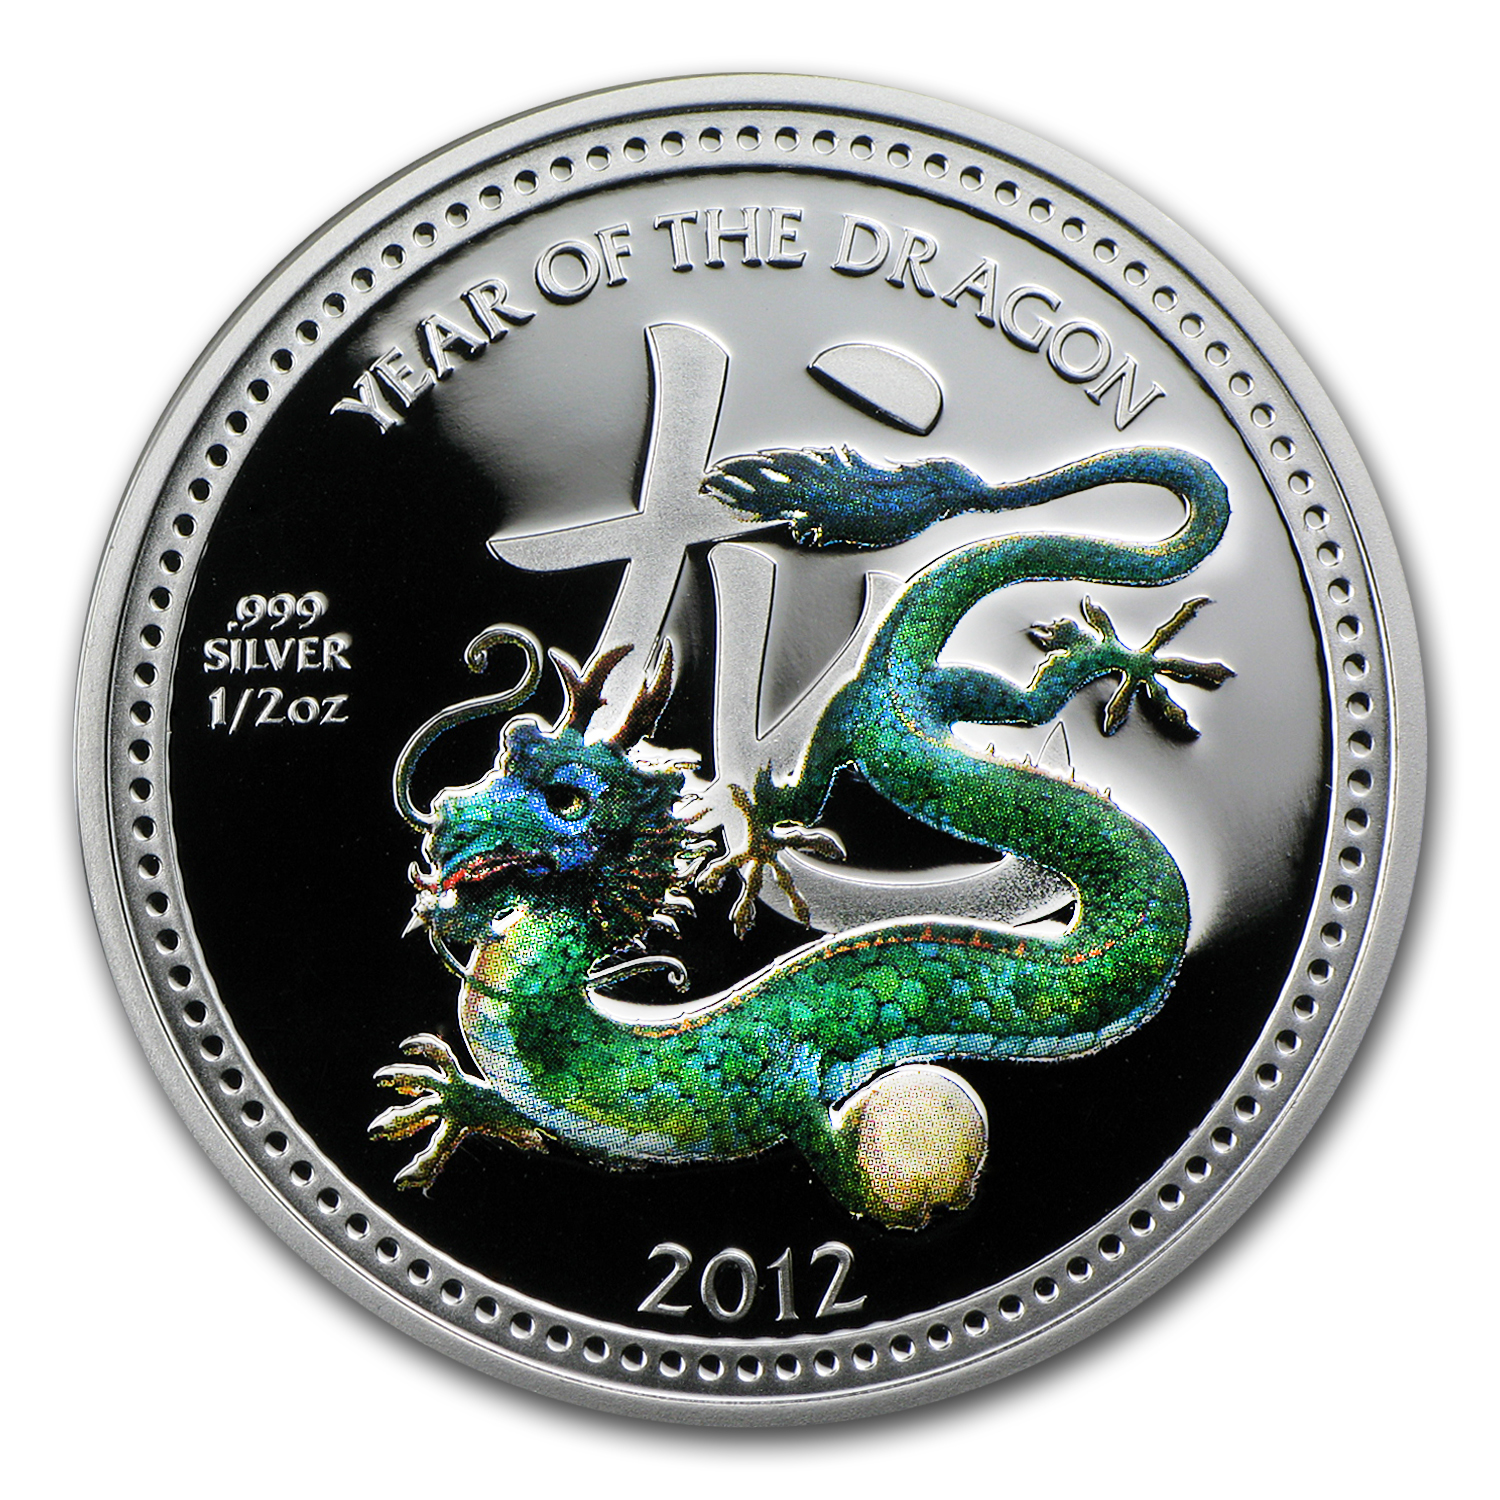 2012 1/2 oz Silver Niue $2 Pearl Dragon in Dragons Egg Case